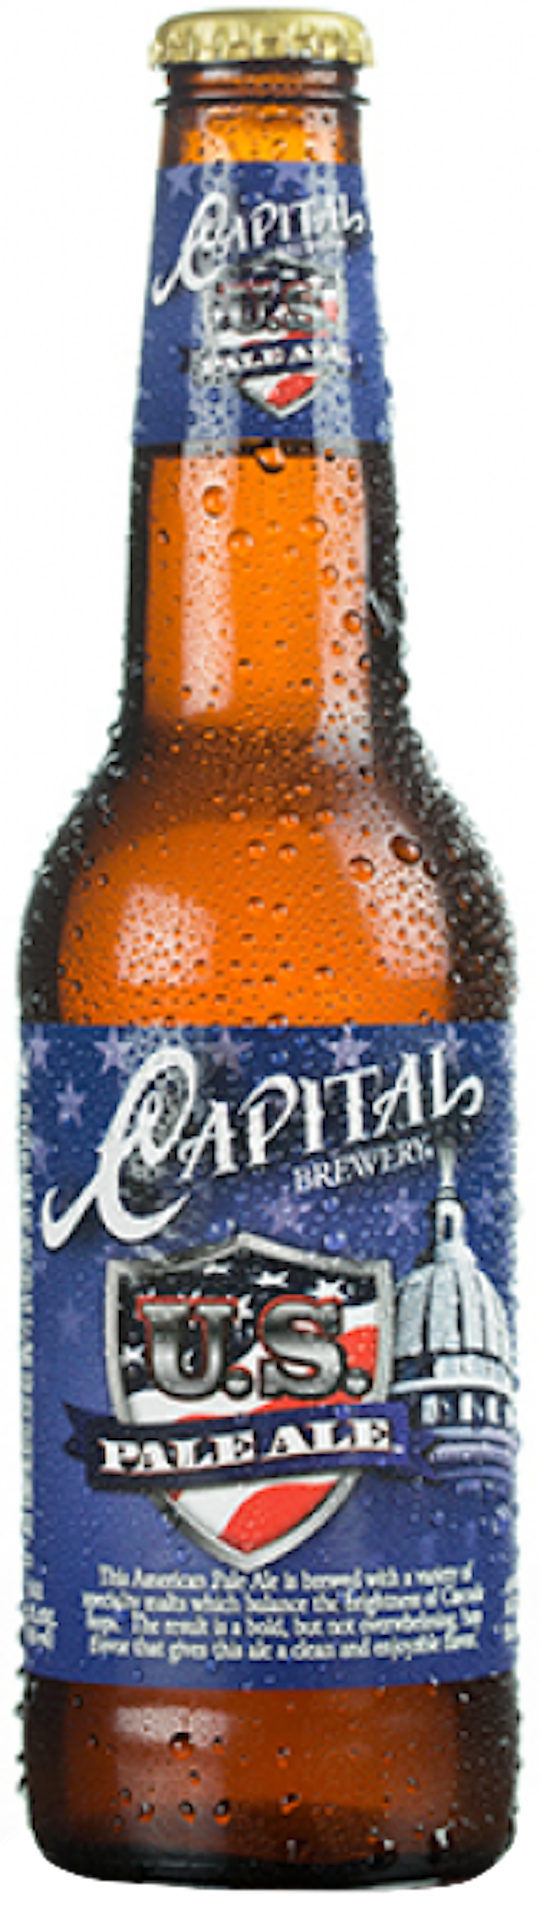 capital-brewery-us-pale-ale_